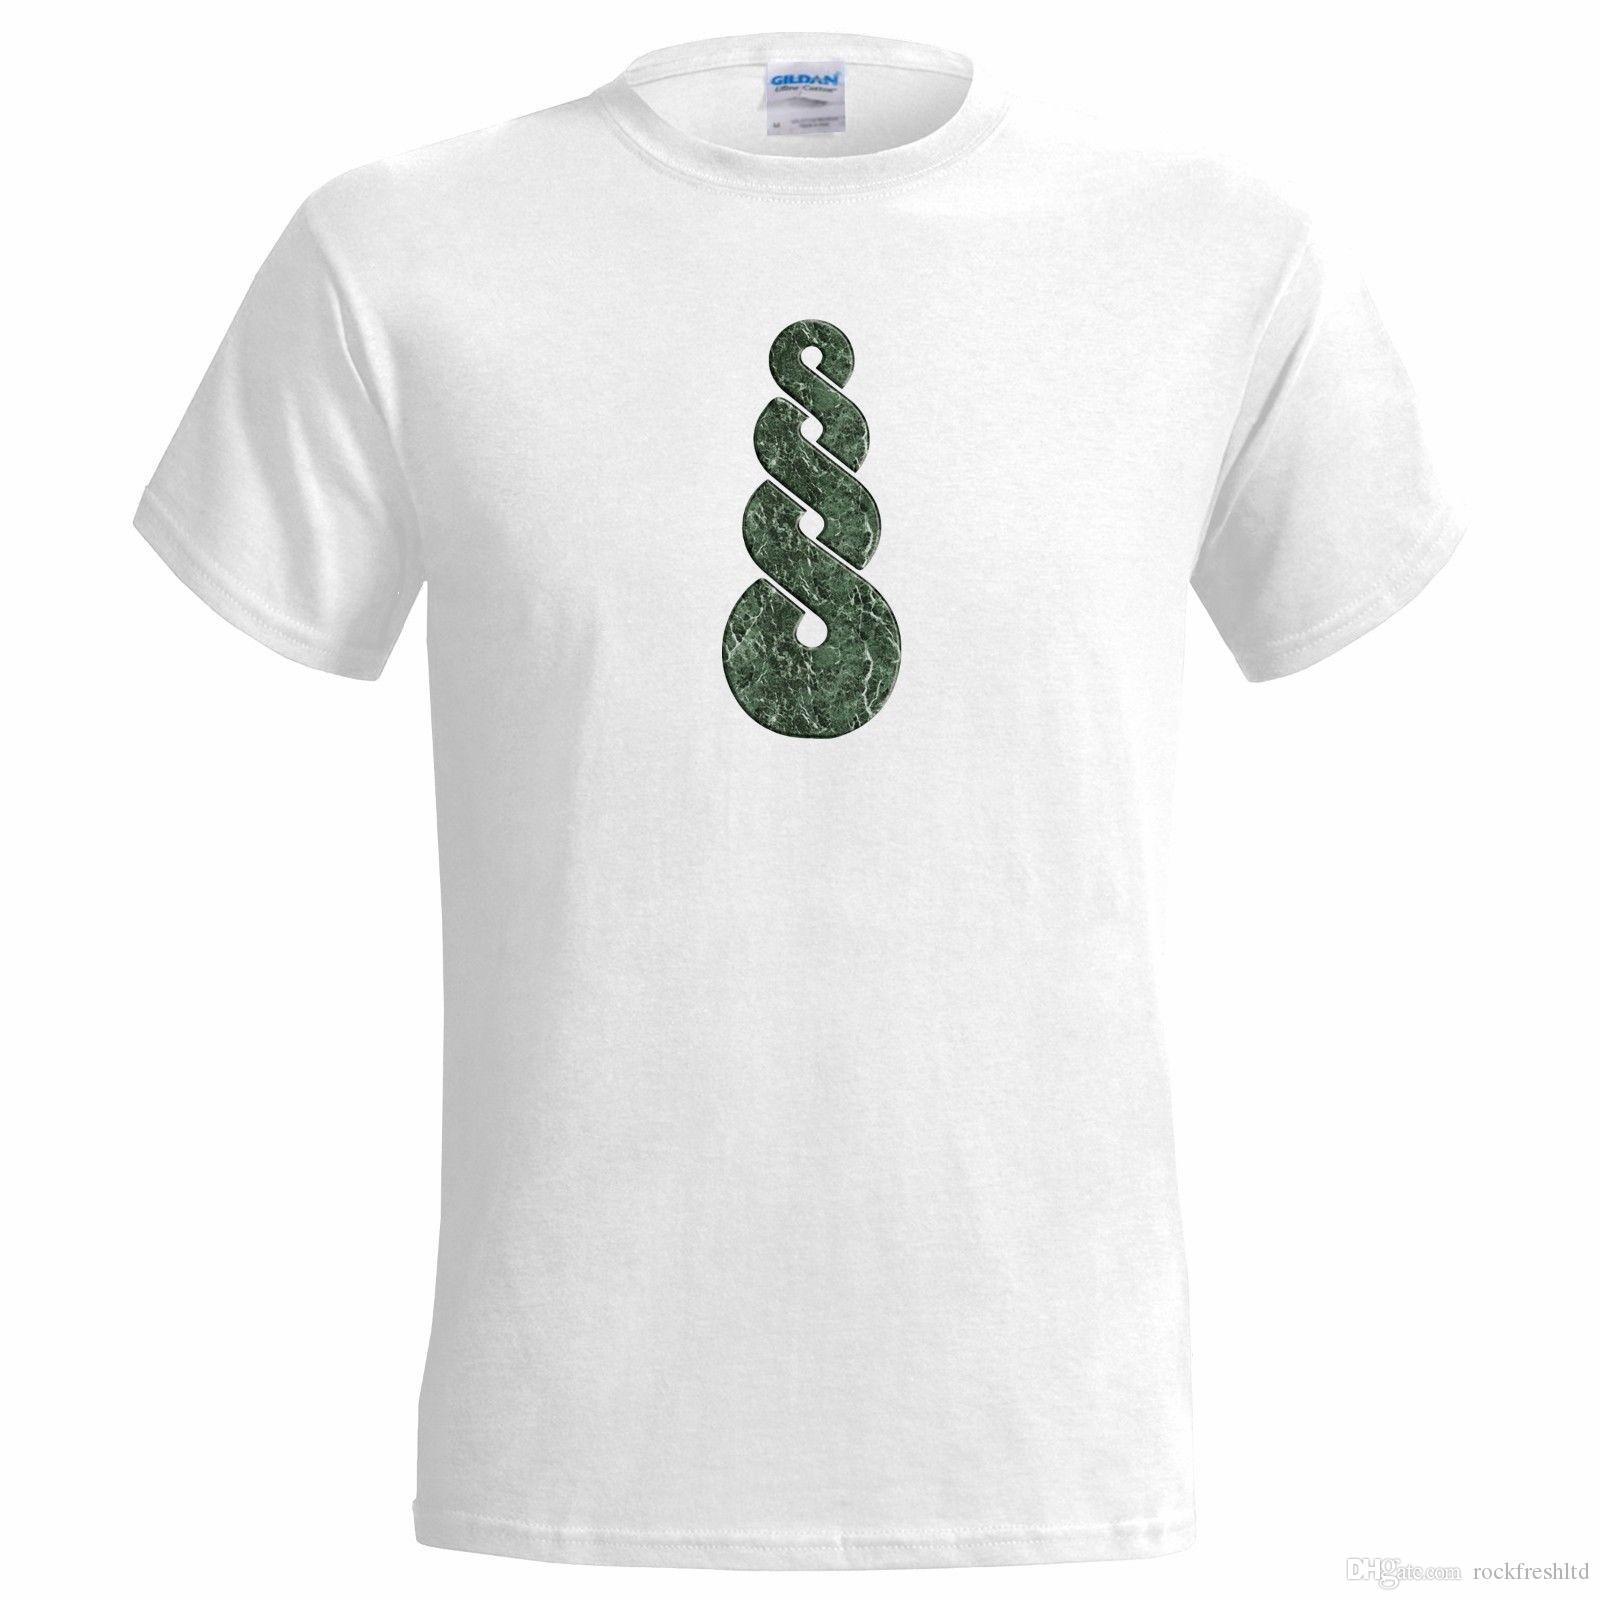 739367775 Cheap T Shirts Printing Nz – EDGE Engineering and Consulting Limited